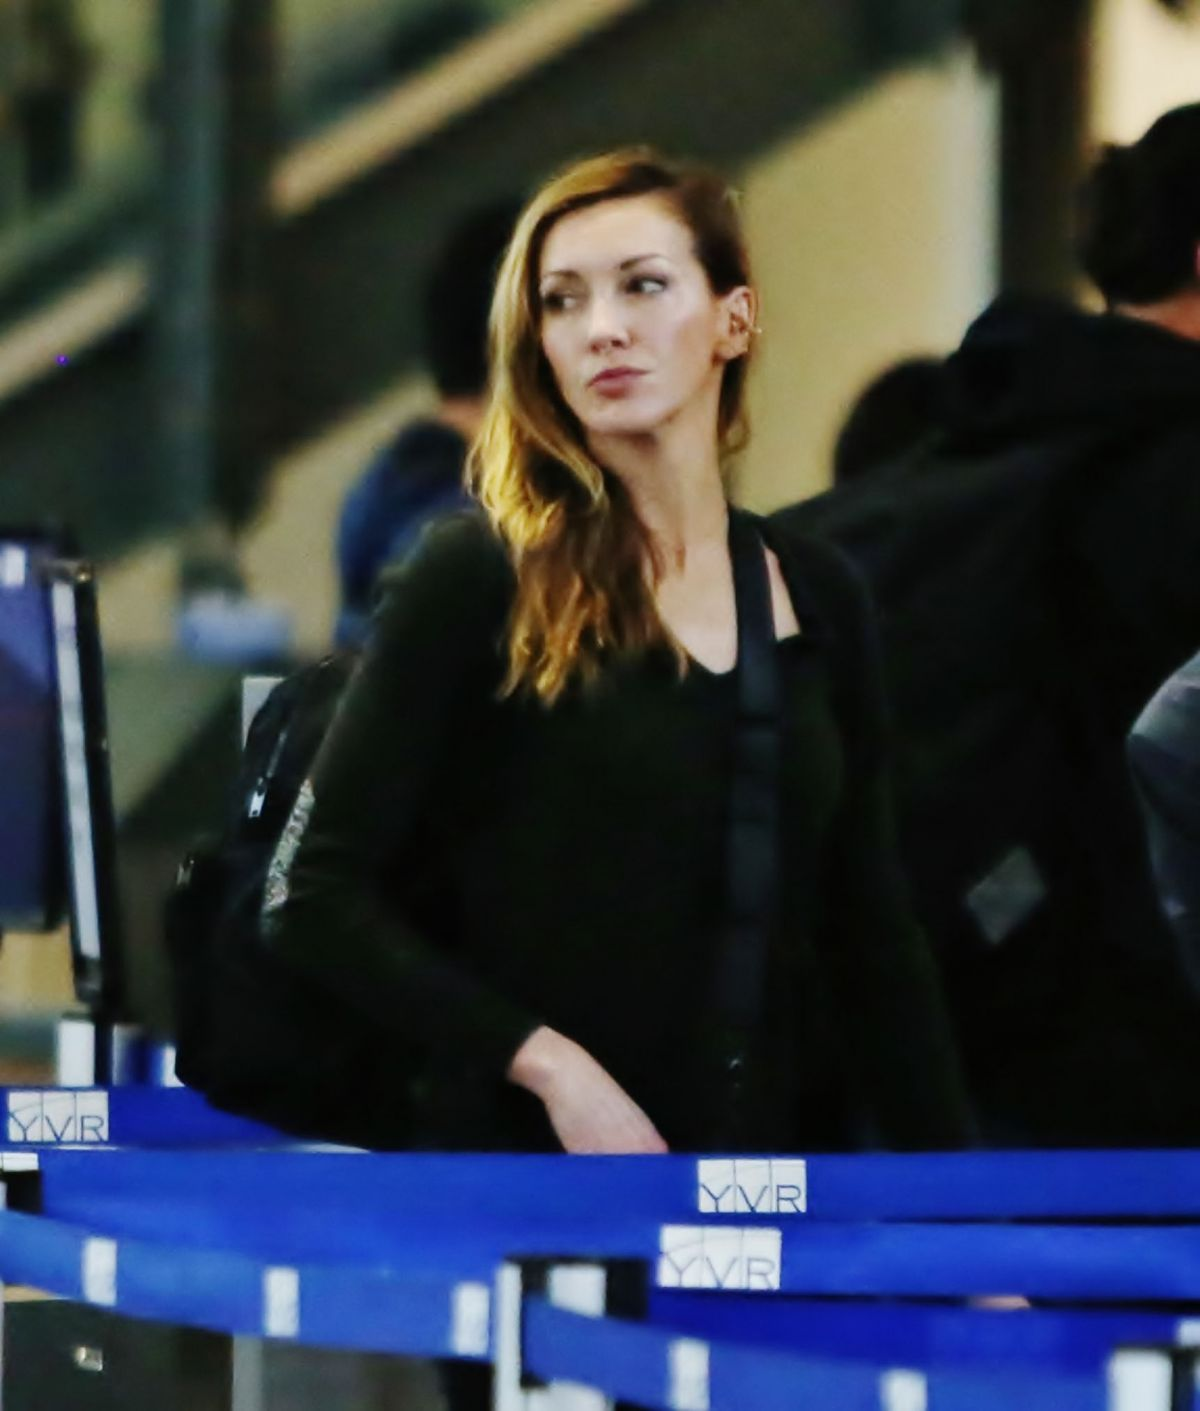 KATIE CASSIDY at Vancouver International Airport 02/16 ...